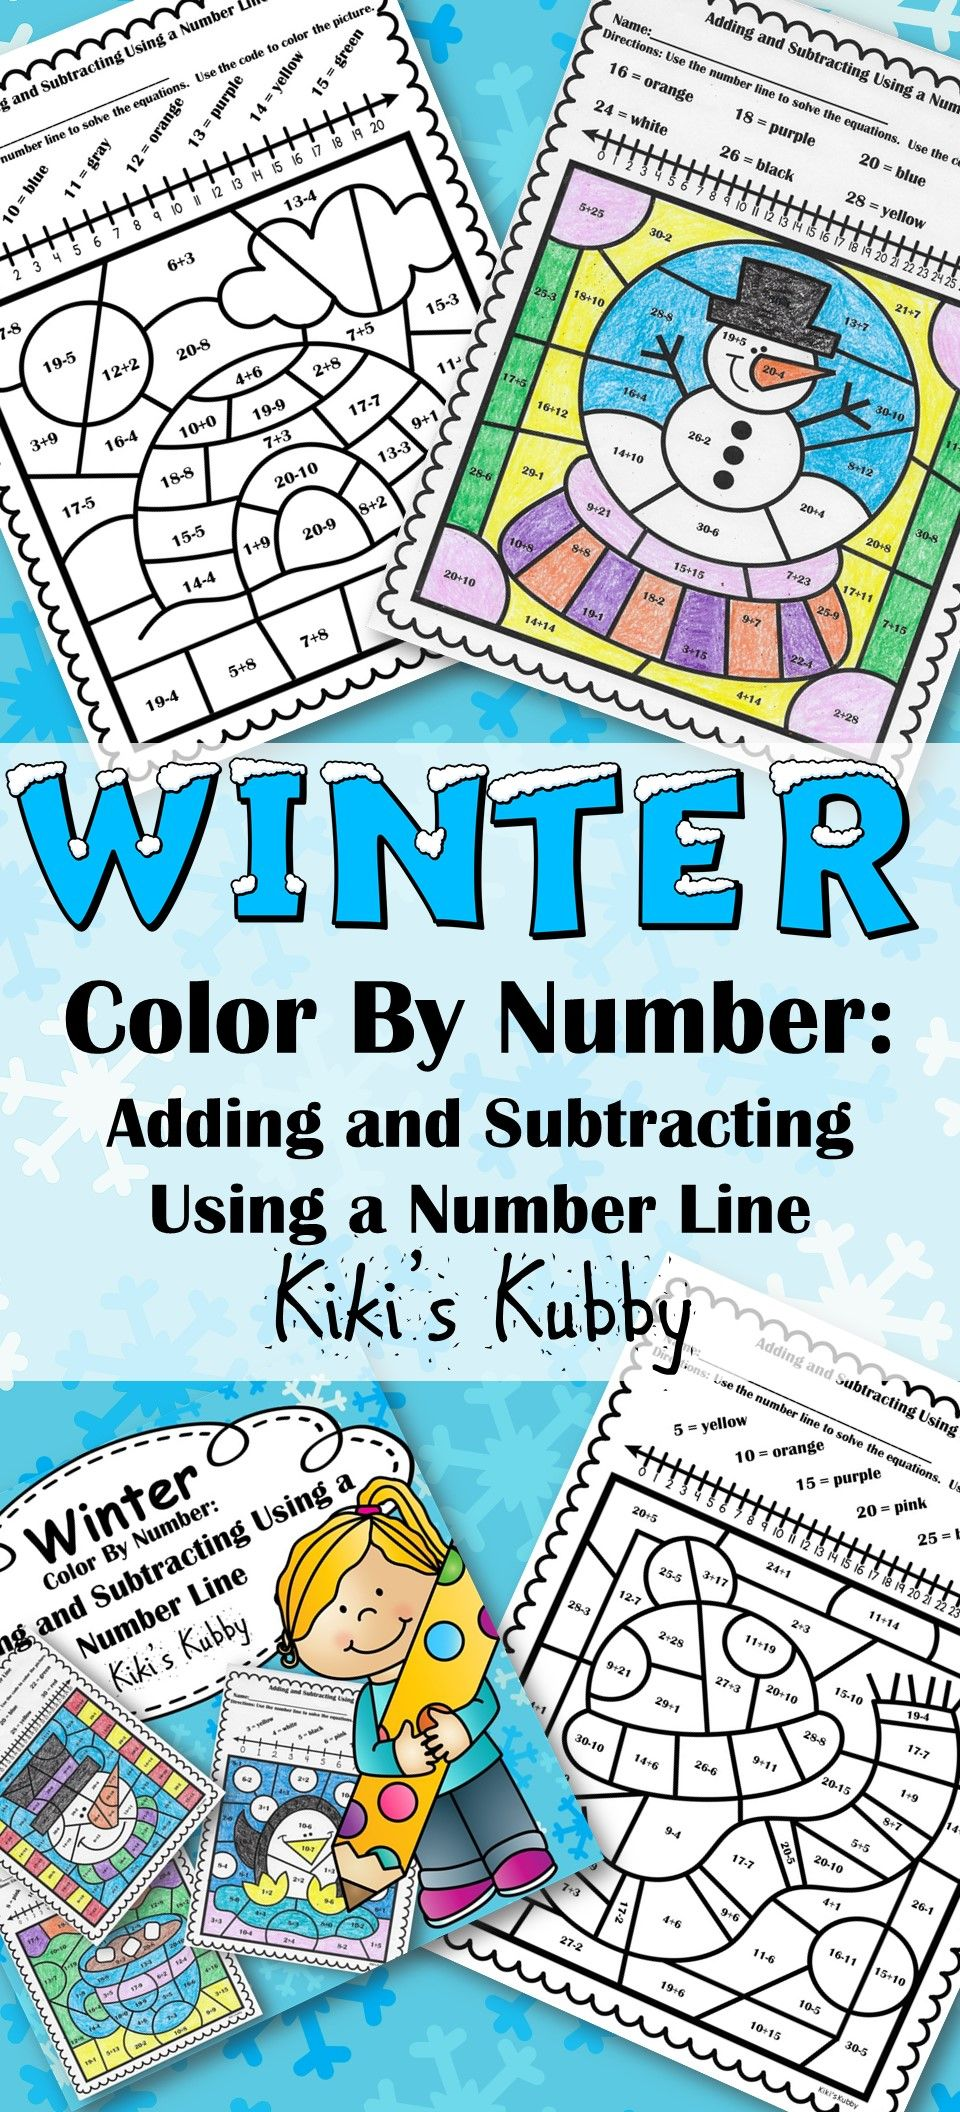 Adding and Subtracting Using a Number Line | Number, Worksheets and Math